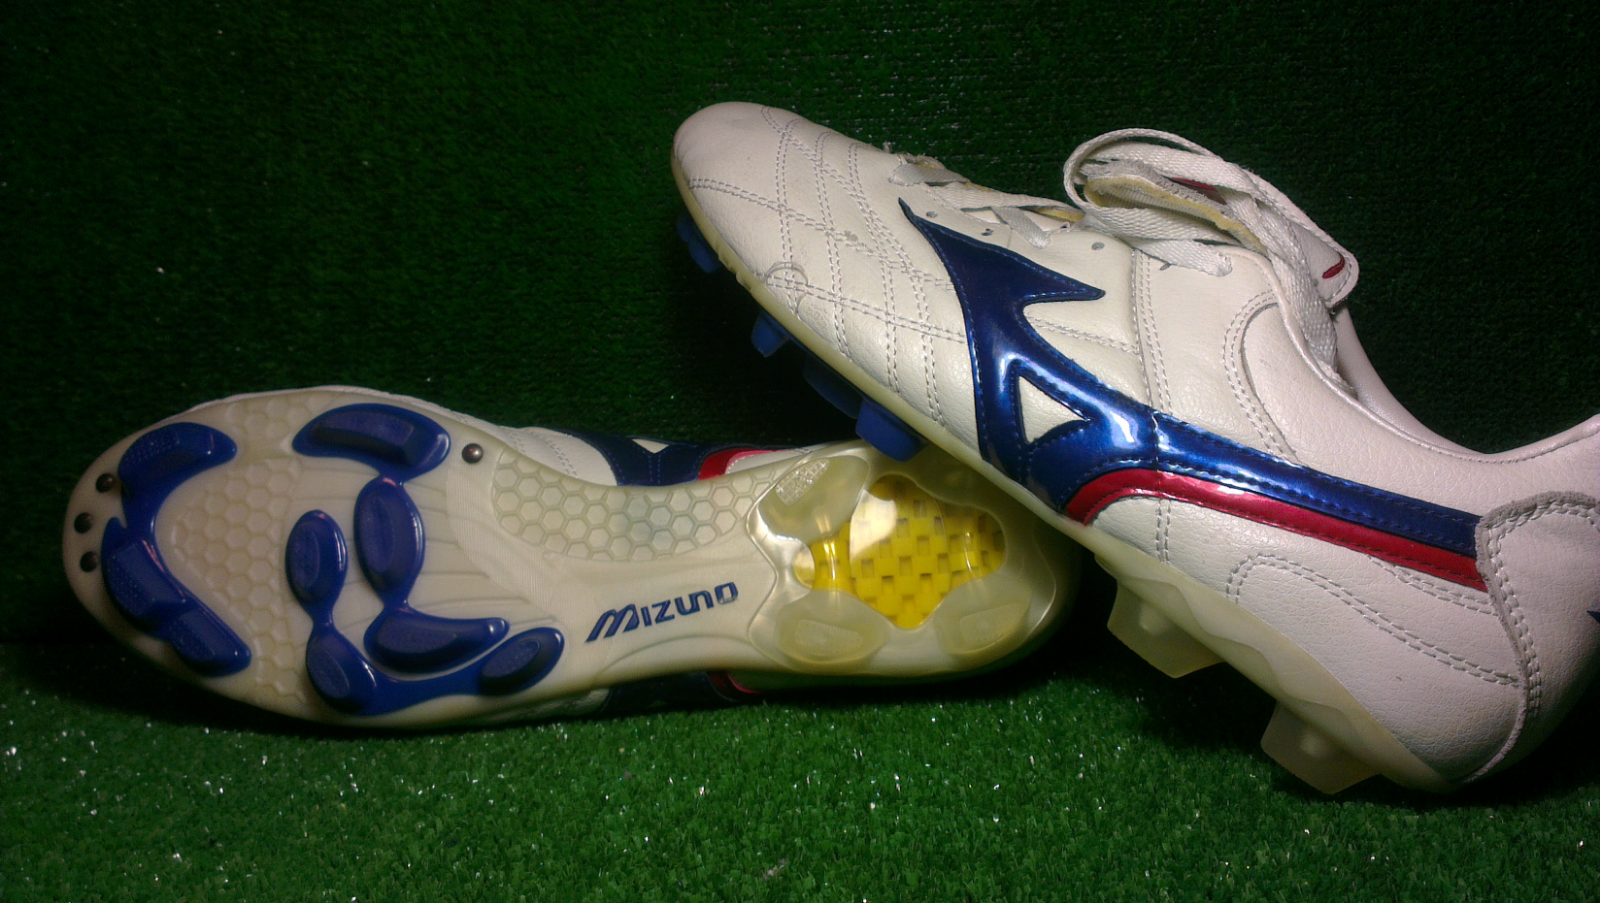 Mizuno Football stivali  Rivaldo Wave Cup 2002 FG US11 Made in Korea